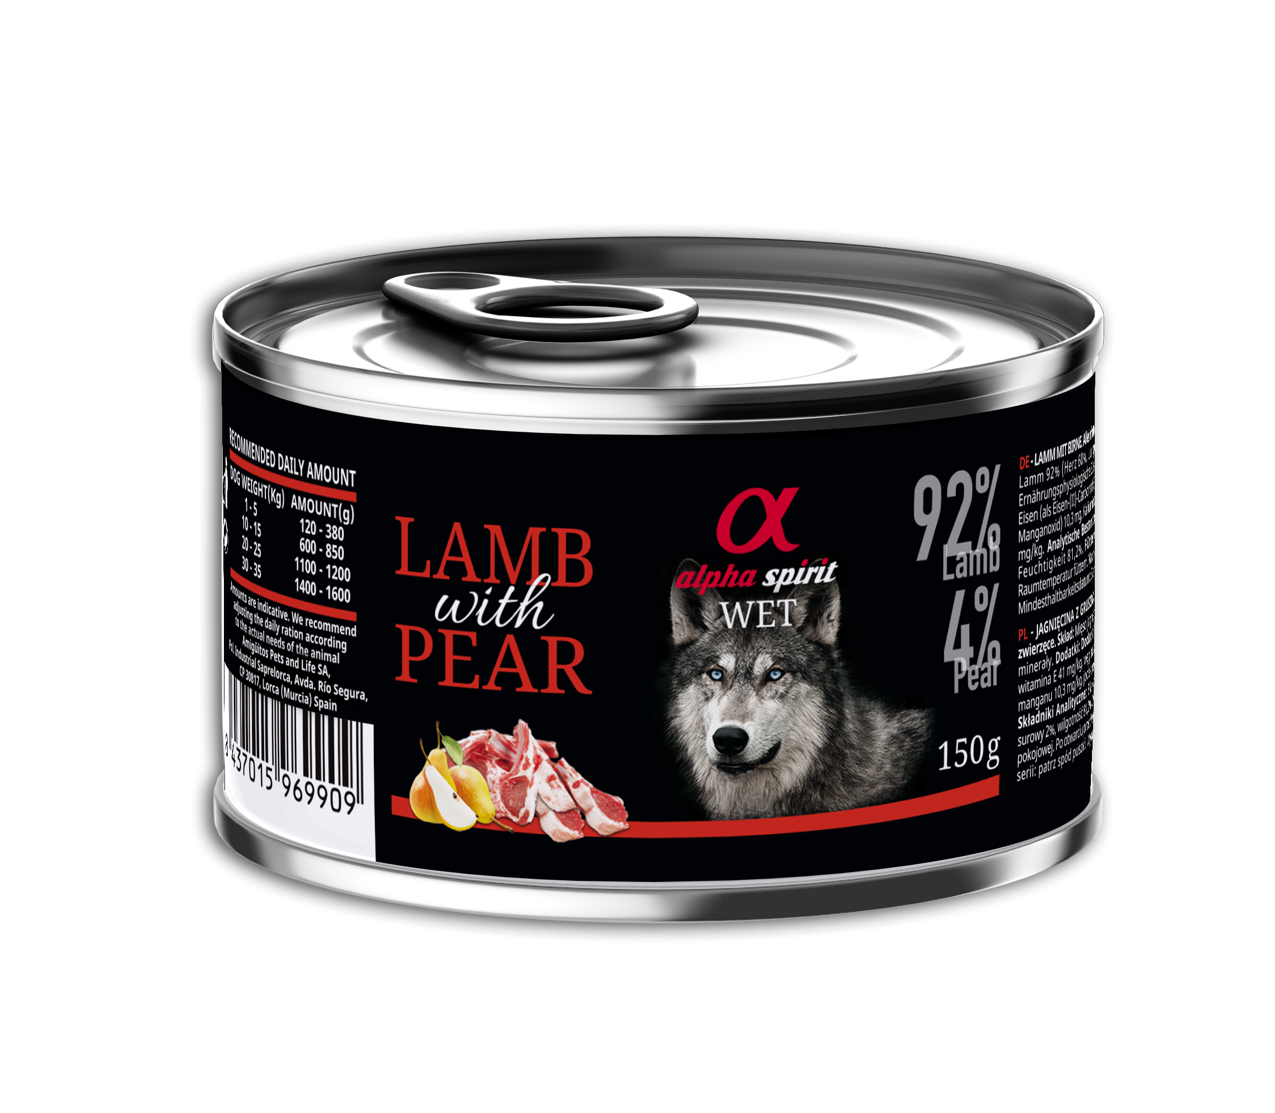 WET FOOD OF LAMB WITH PEAR